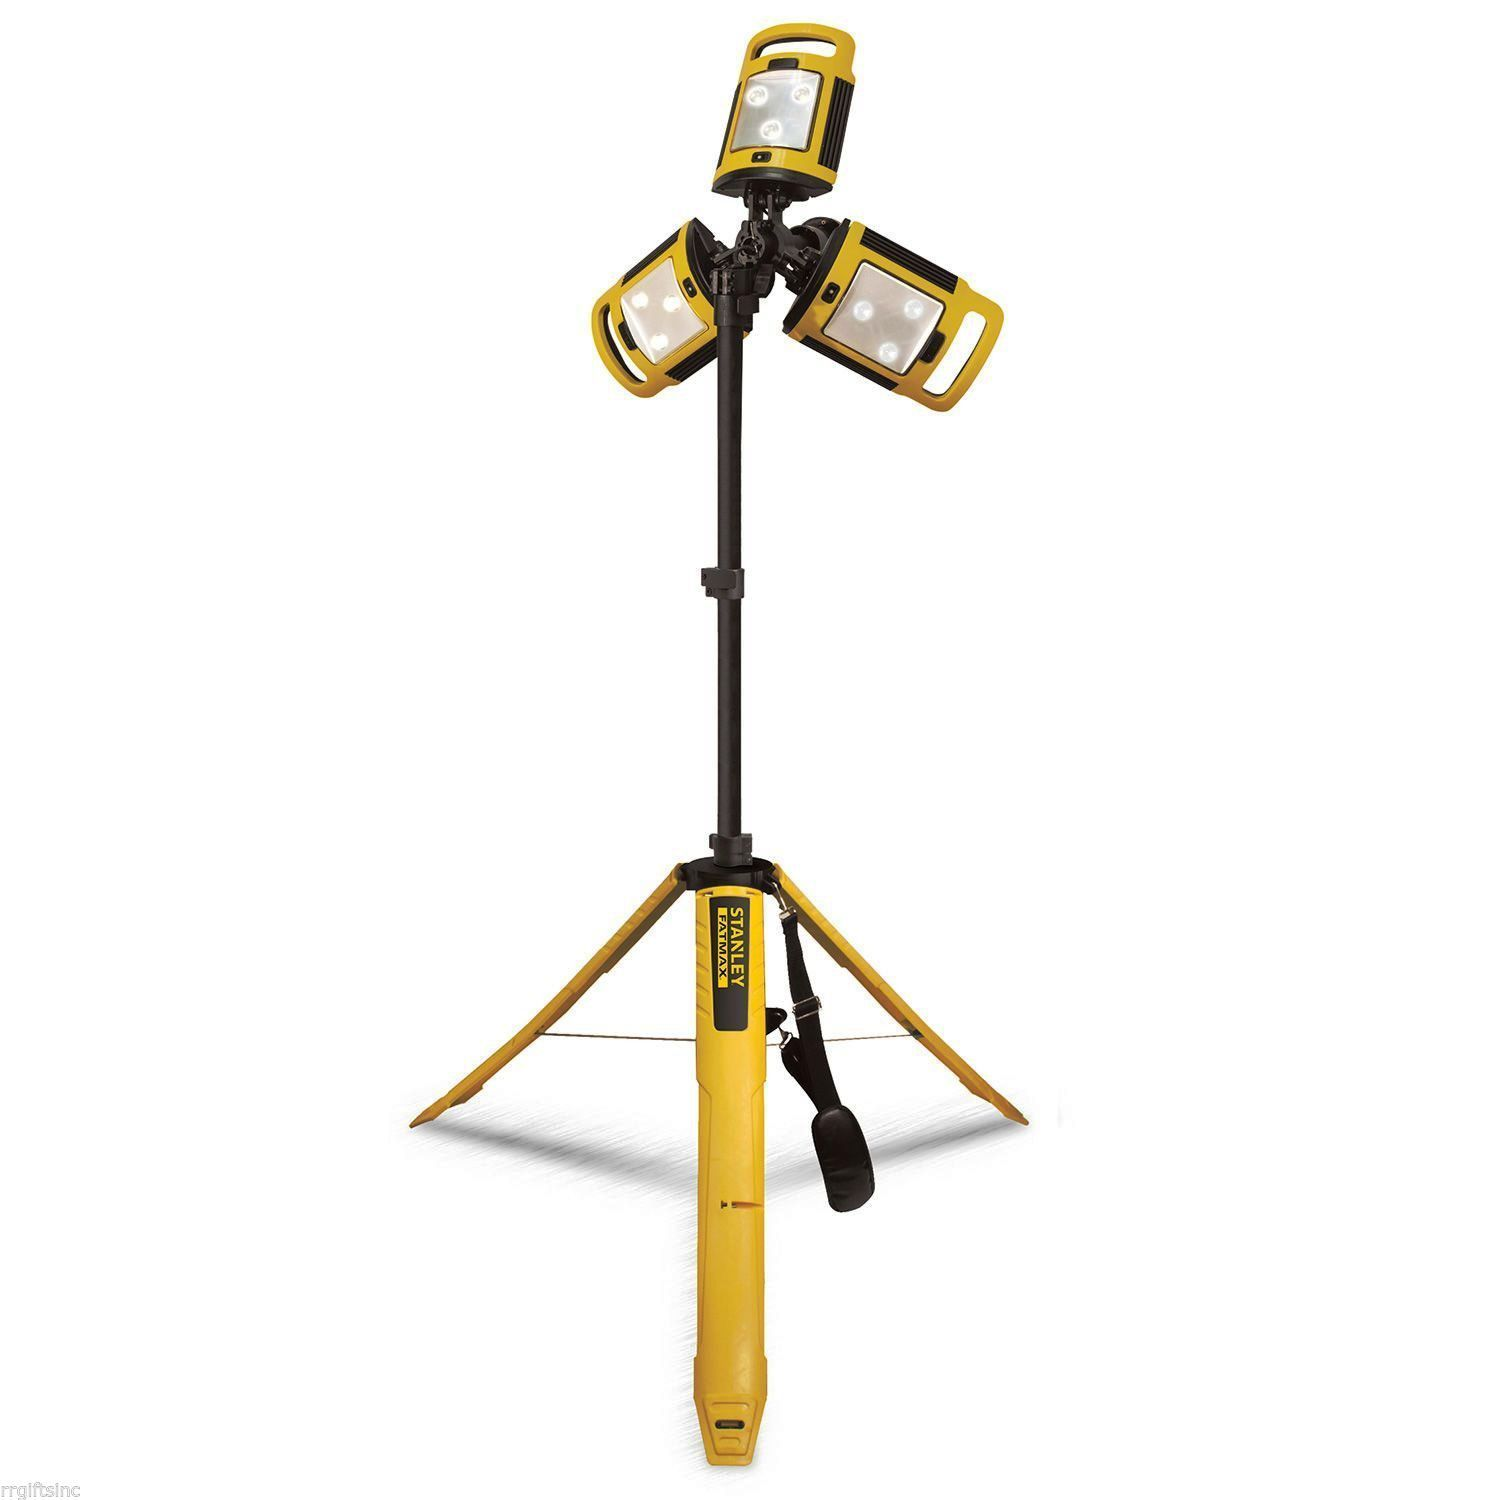 Stanley ultimate led tripod lighting safety security Ultimate lighting